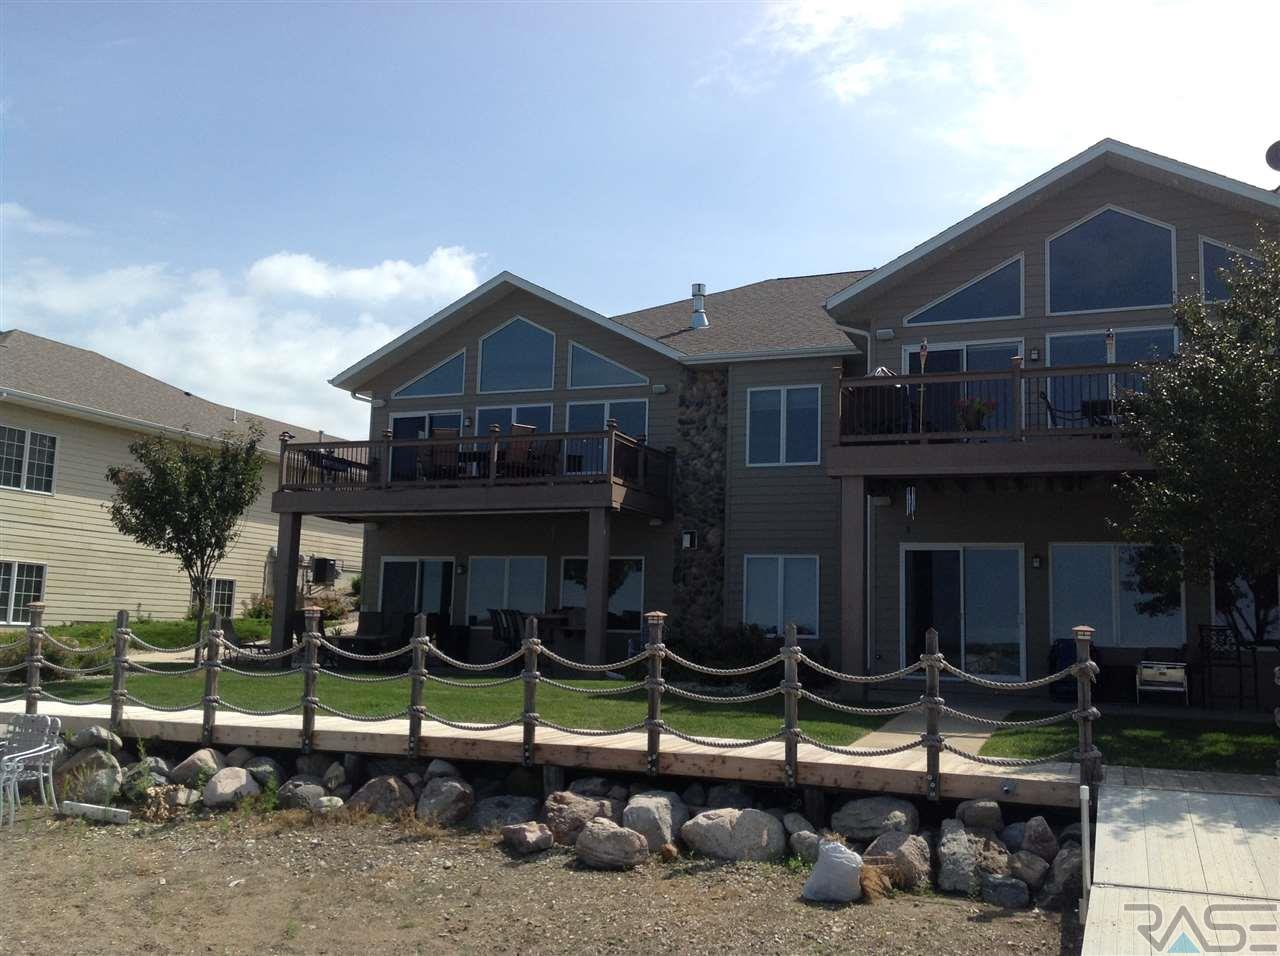 23919 464 Ave, Chester, SD 57016